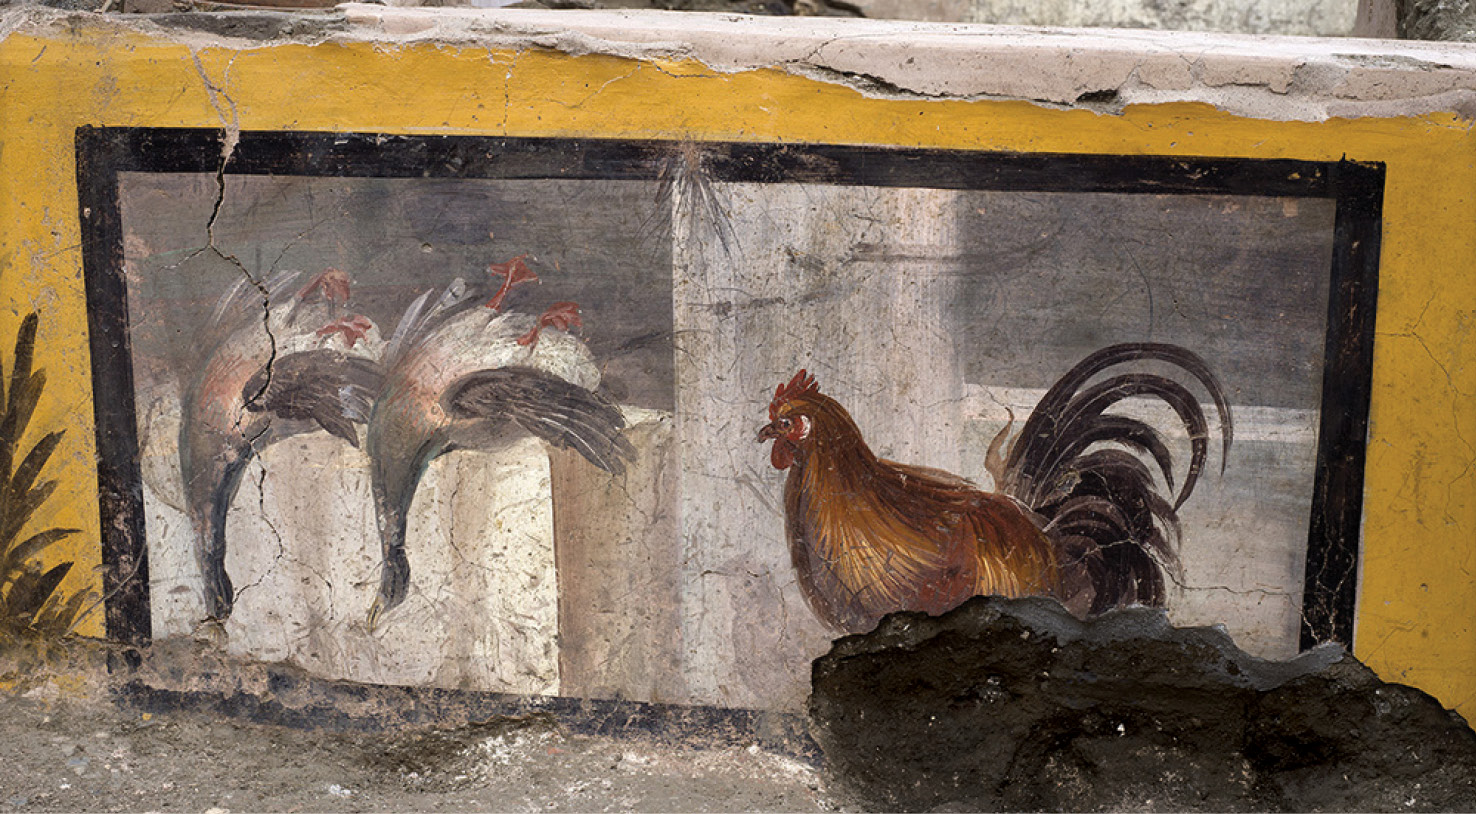 LEFT A pair of dead ducks and a rooster painted on the counter of the recently uncovered thermopolium in Pompeii.